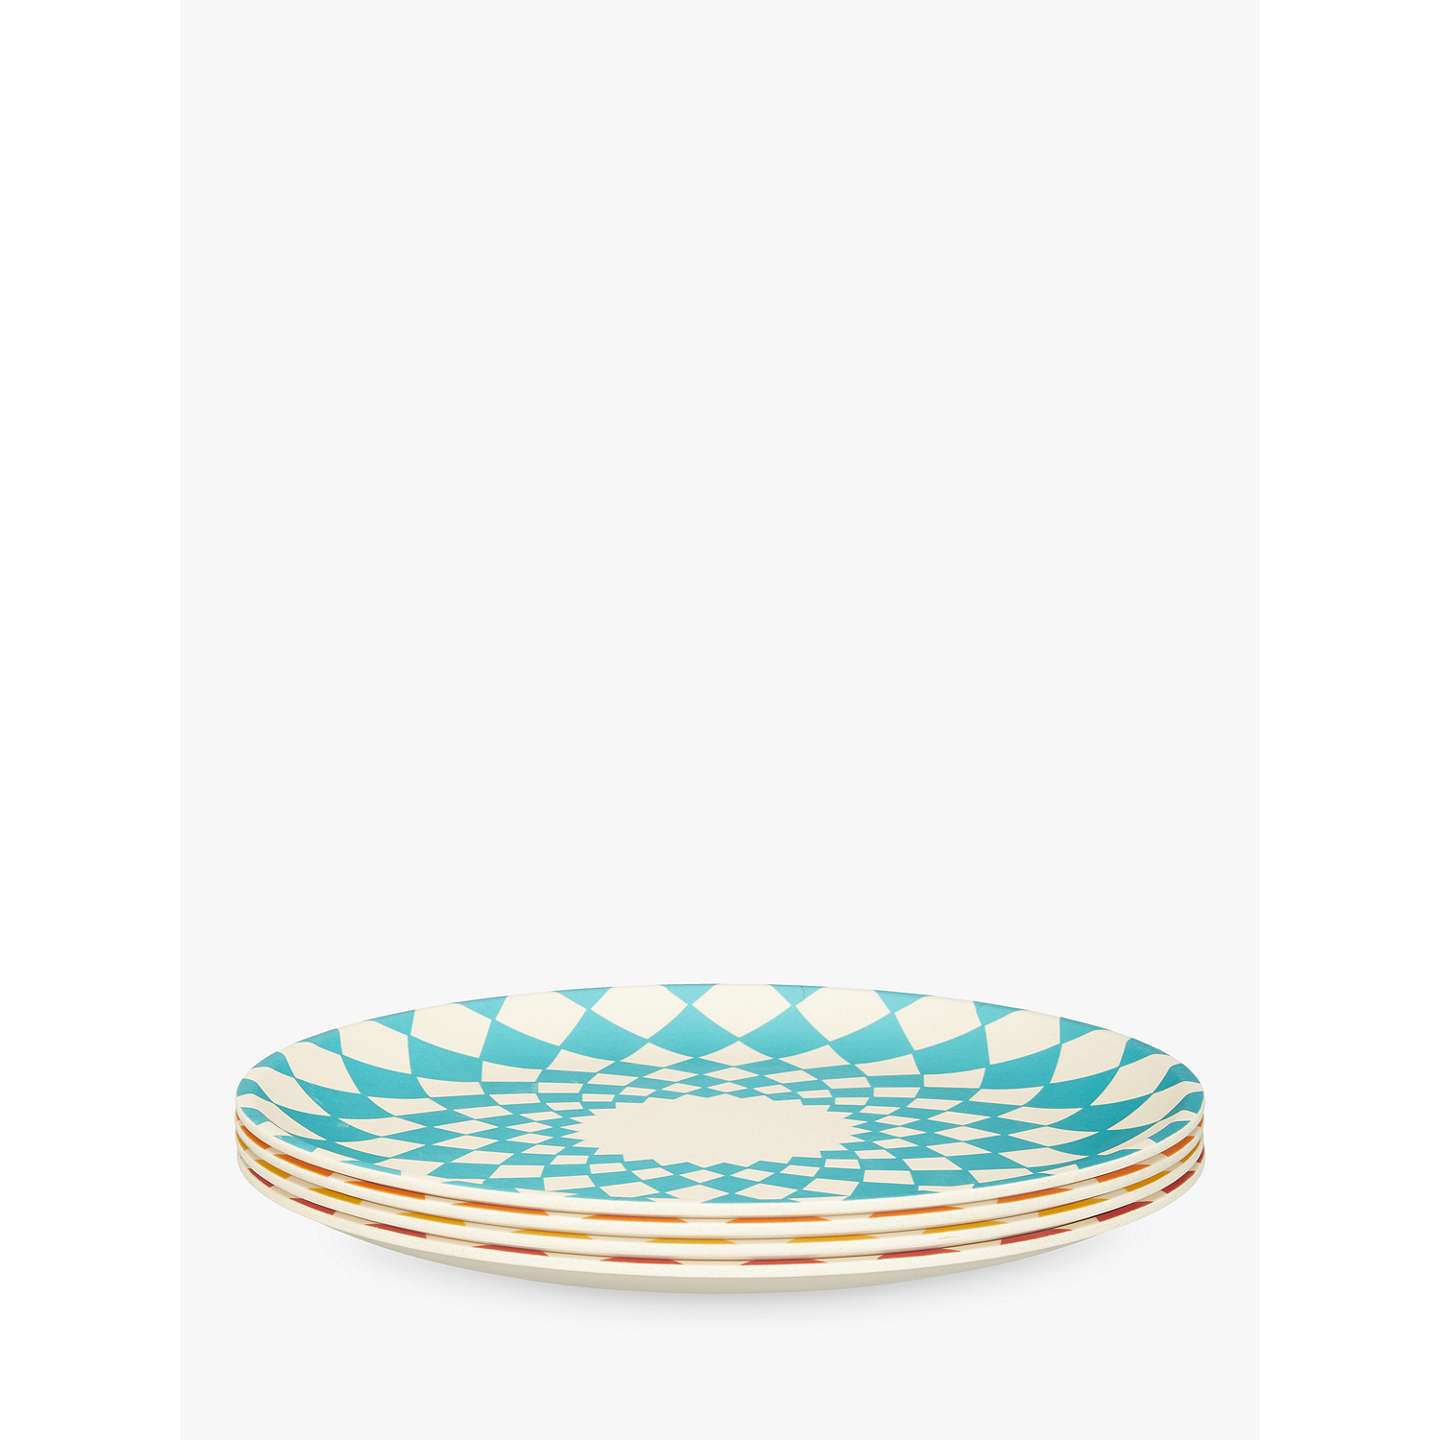 ... BuyLEON Bamboo Picnic Plates Assorted Dia.25cm Set of 4 Online at ...  sc 1 st  John Lewis & LEON Bamboo Picnic Plates Assorted Dia.25cm Set of 4 at John Lewis